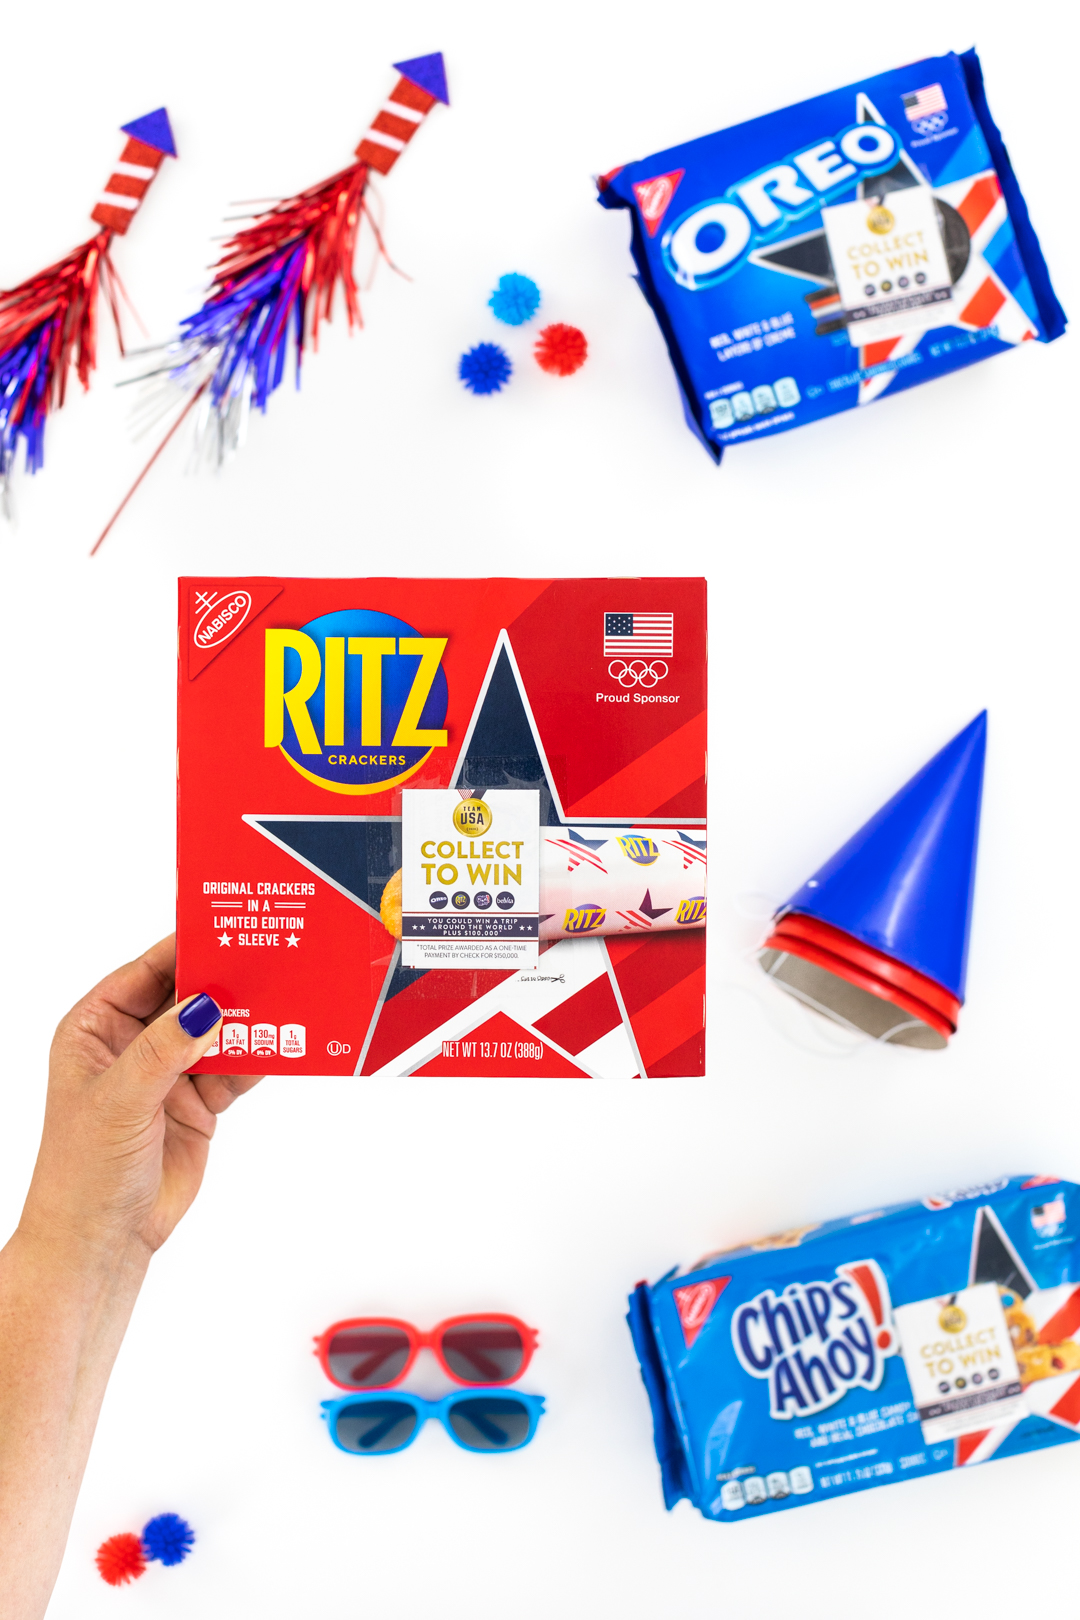 Ritz cracker box with latest promo on top